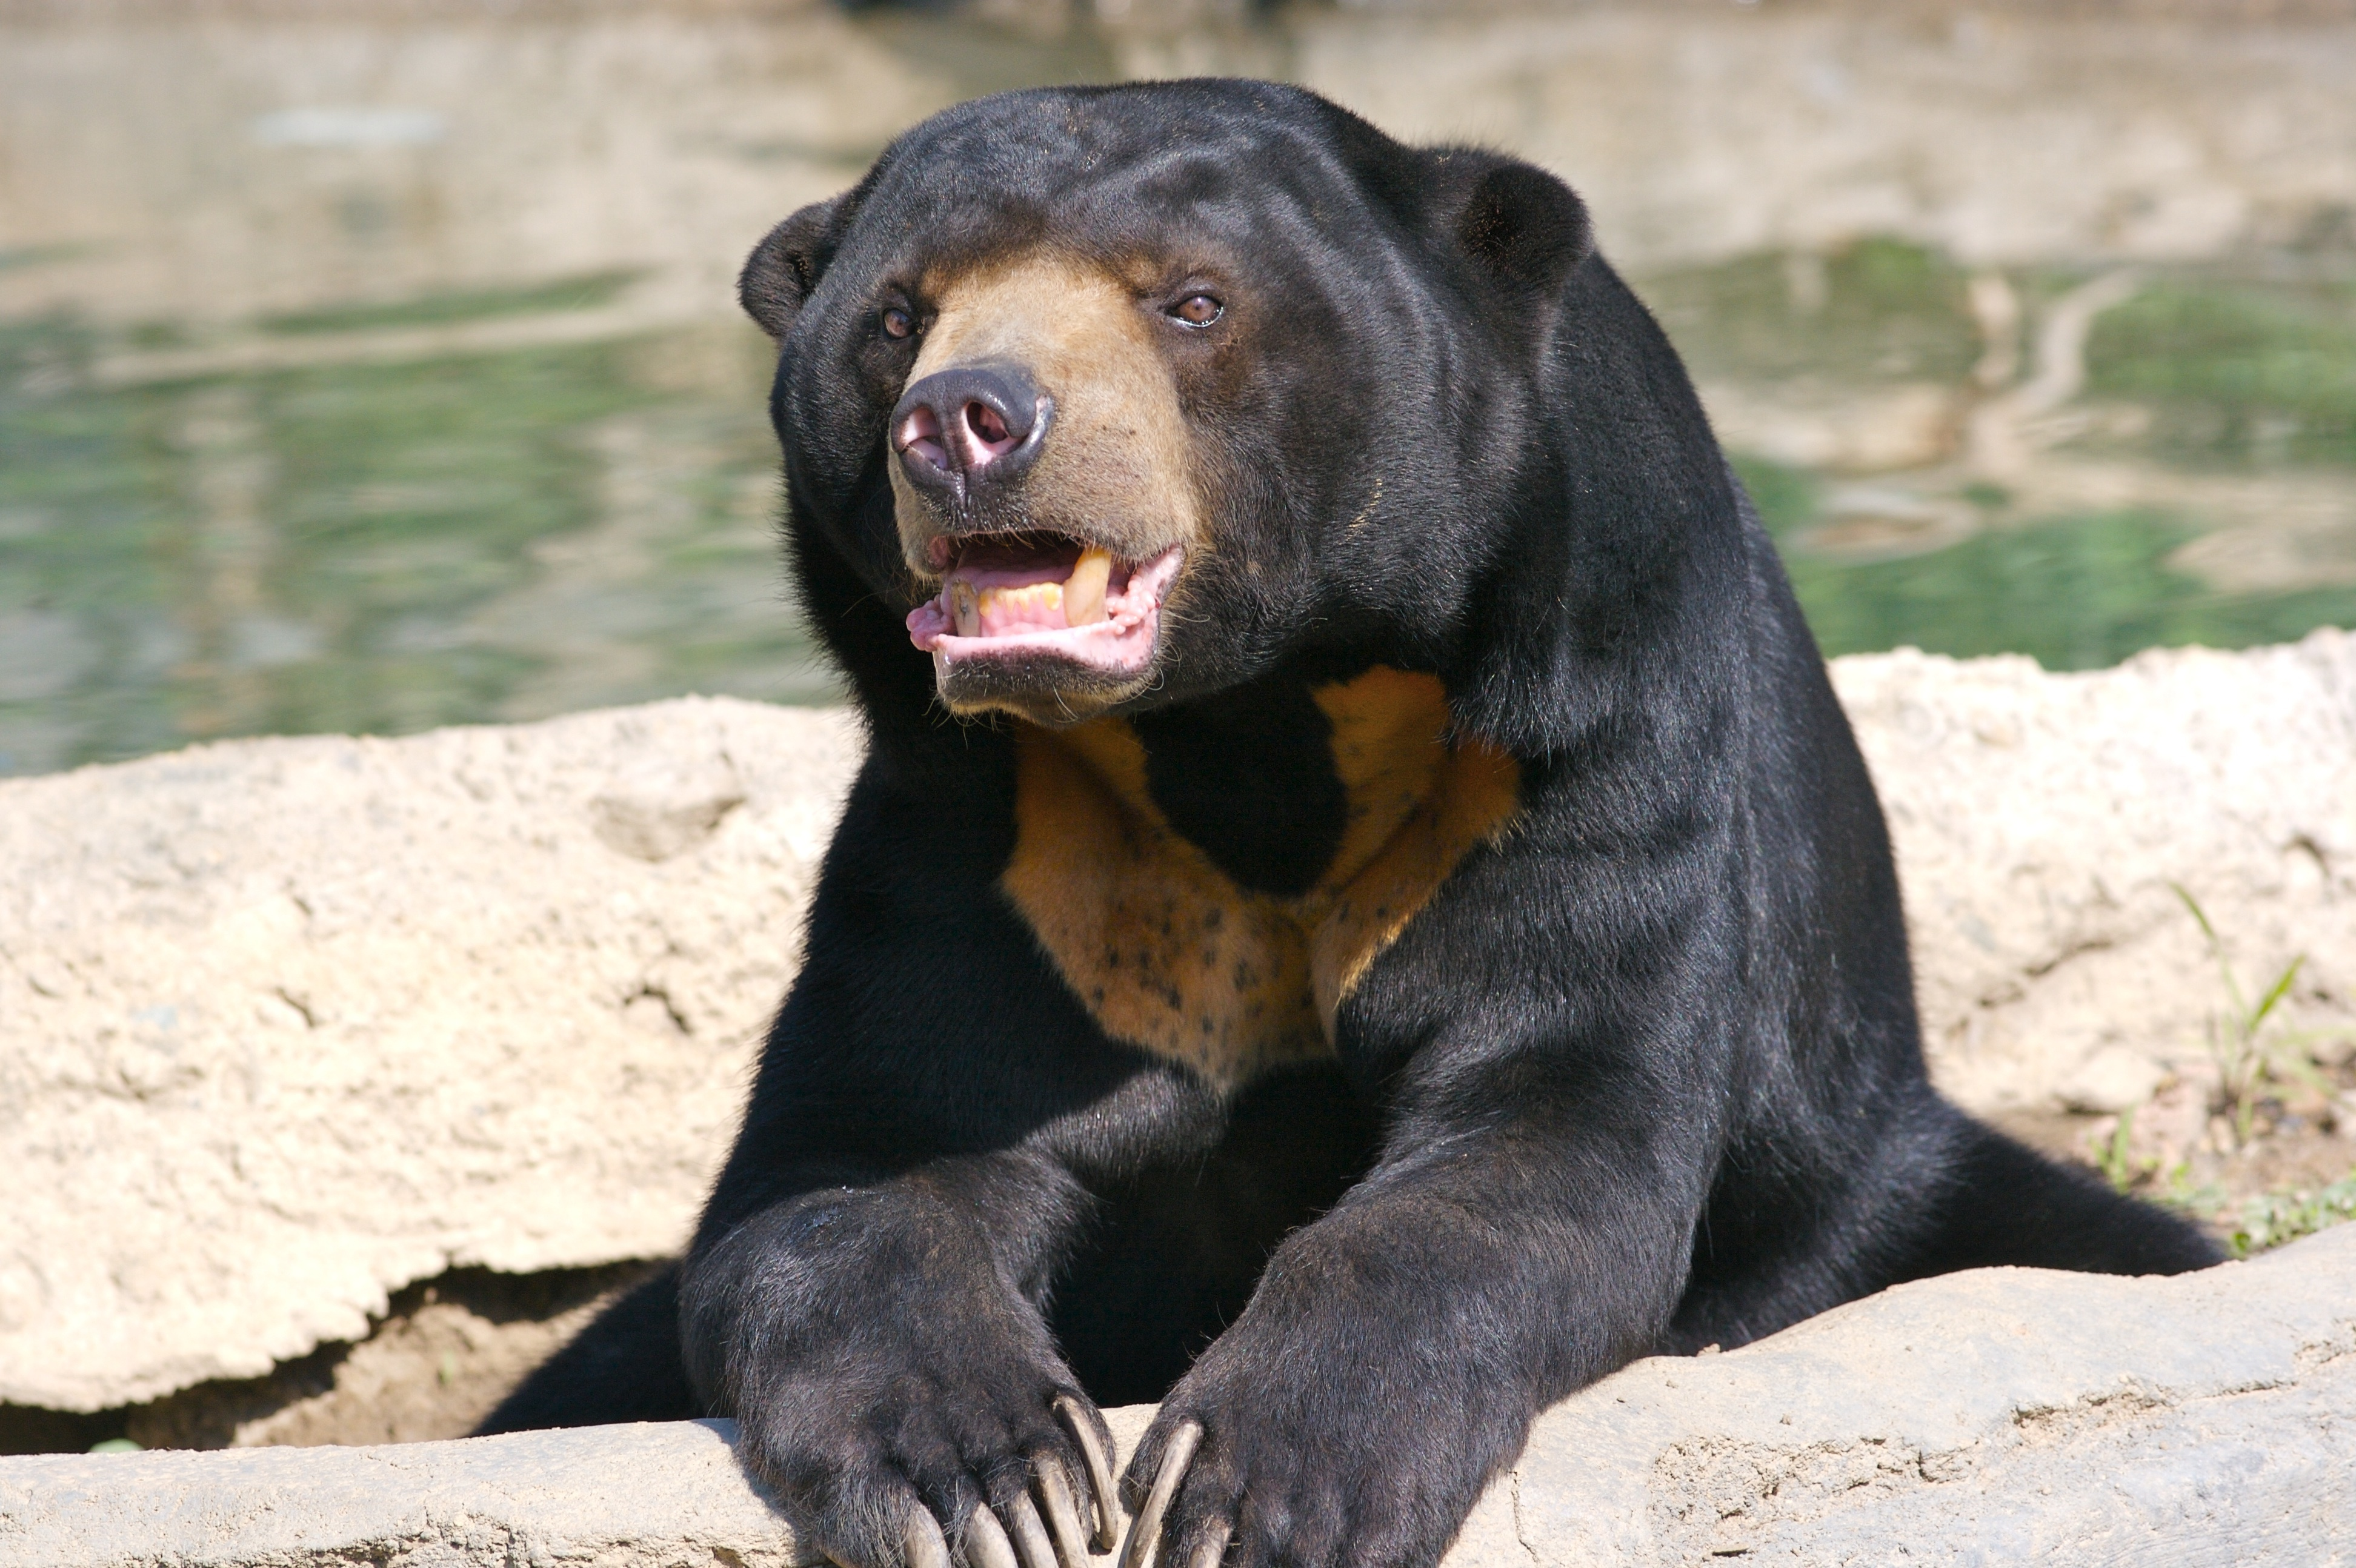 Nature Images 2mb: Sun Bear 4k Ultra HD Wallpaper And Background Image